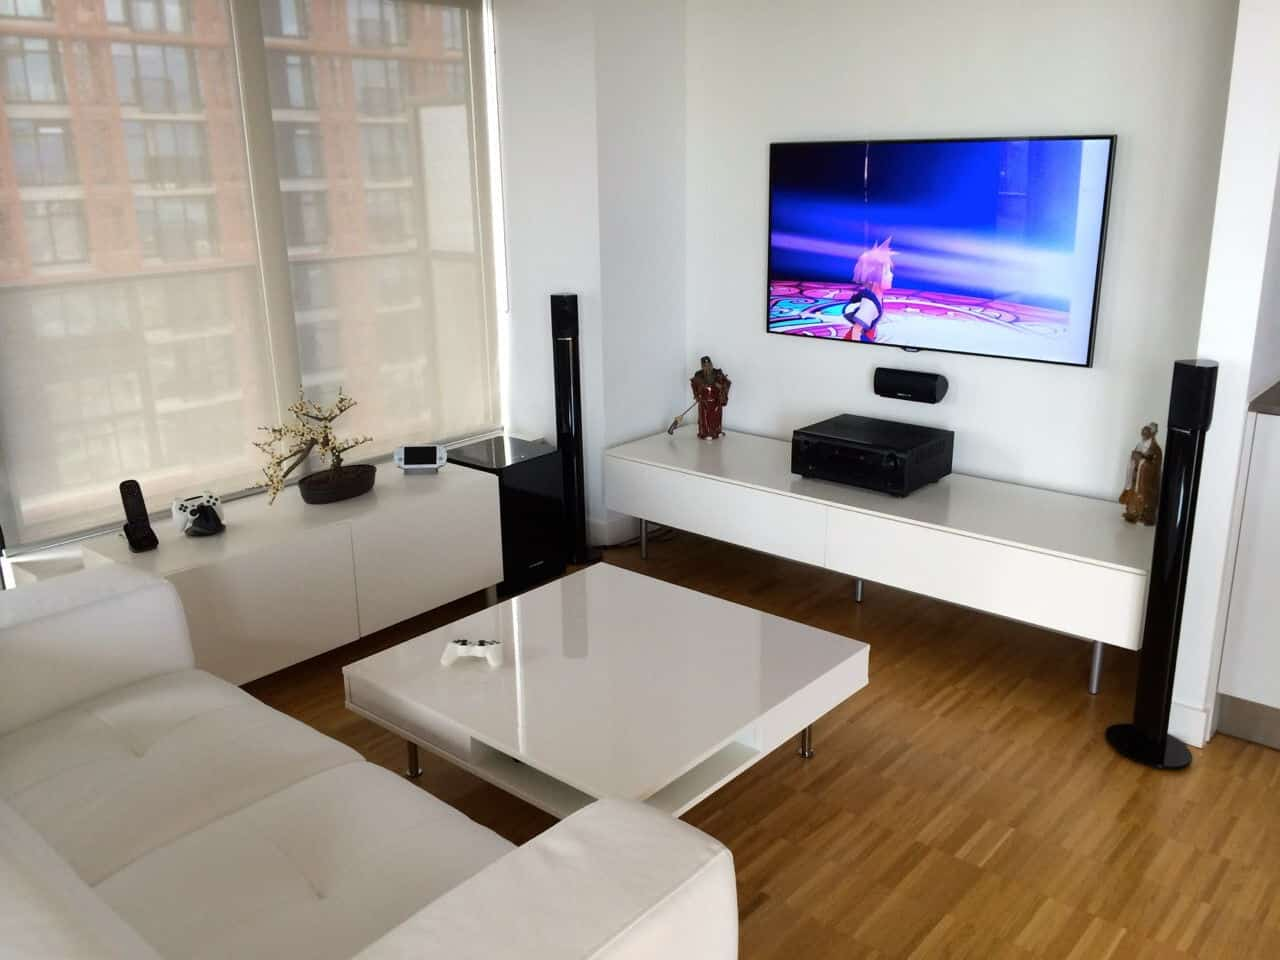 The living room is one of the most important areas in your house for a great hosting experience. 19 Video Game Room Ideas to Create Your Perfect Game Room